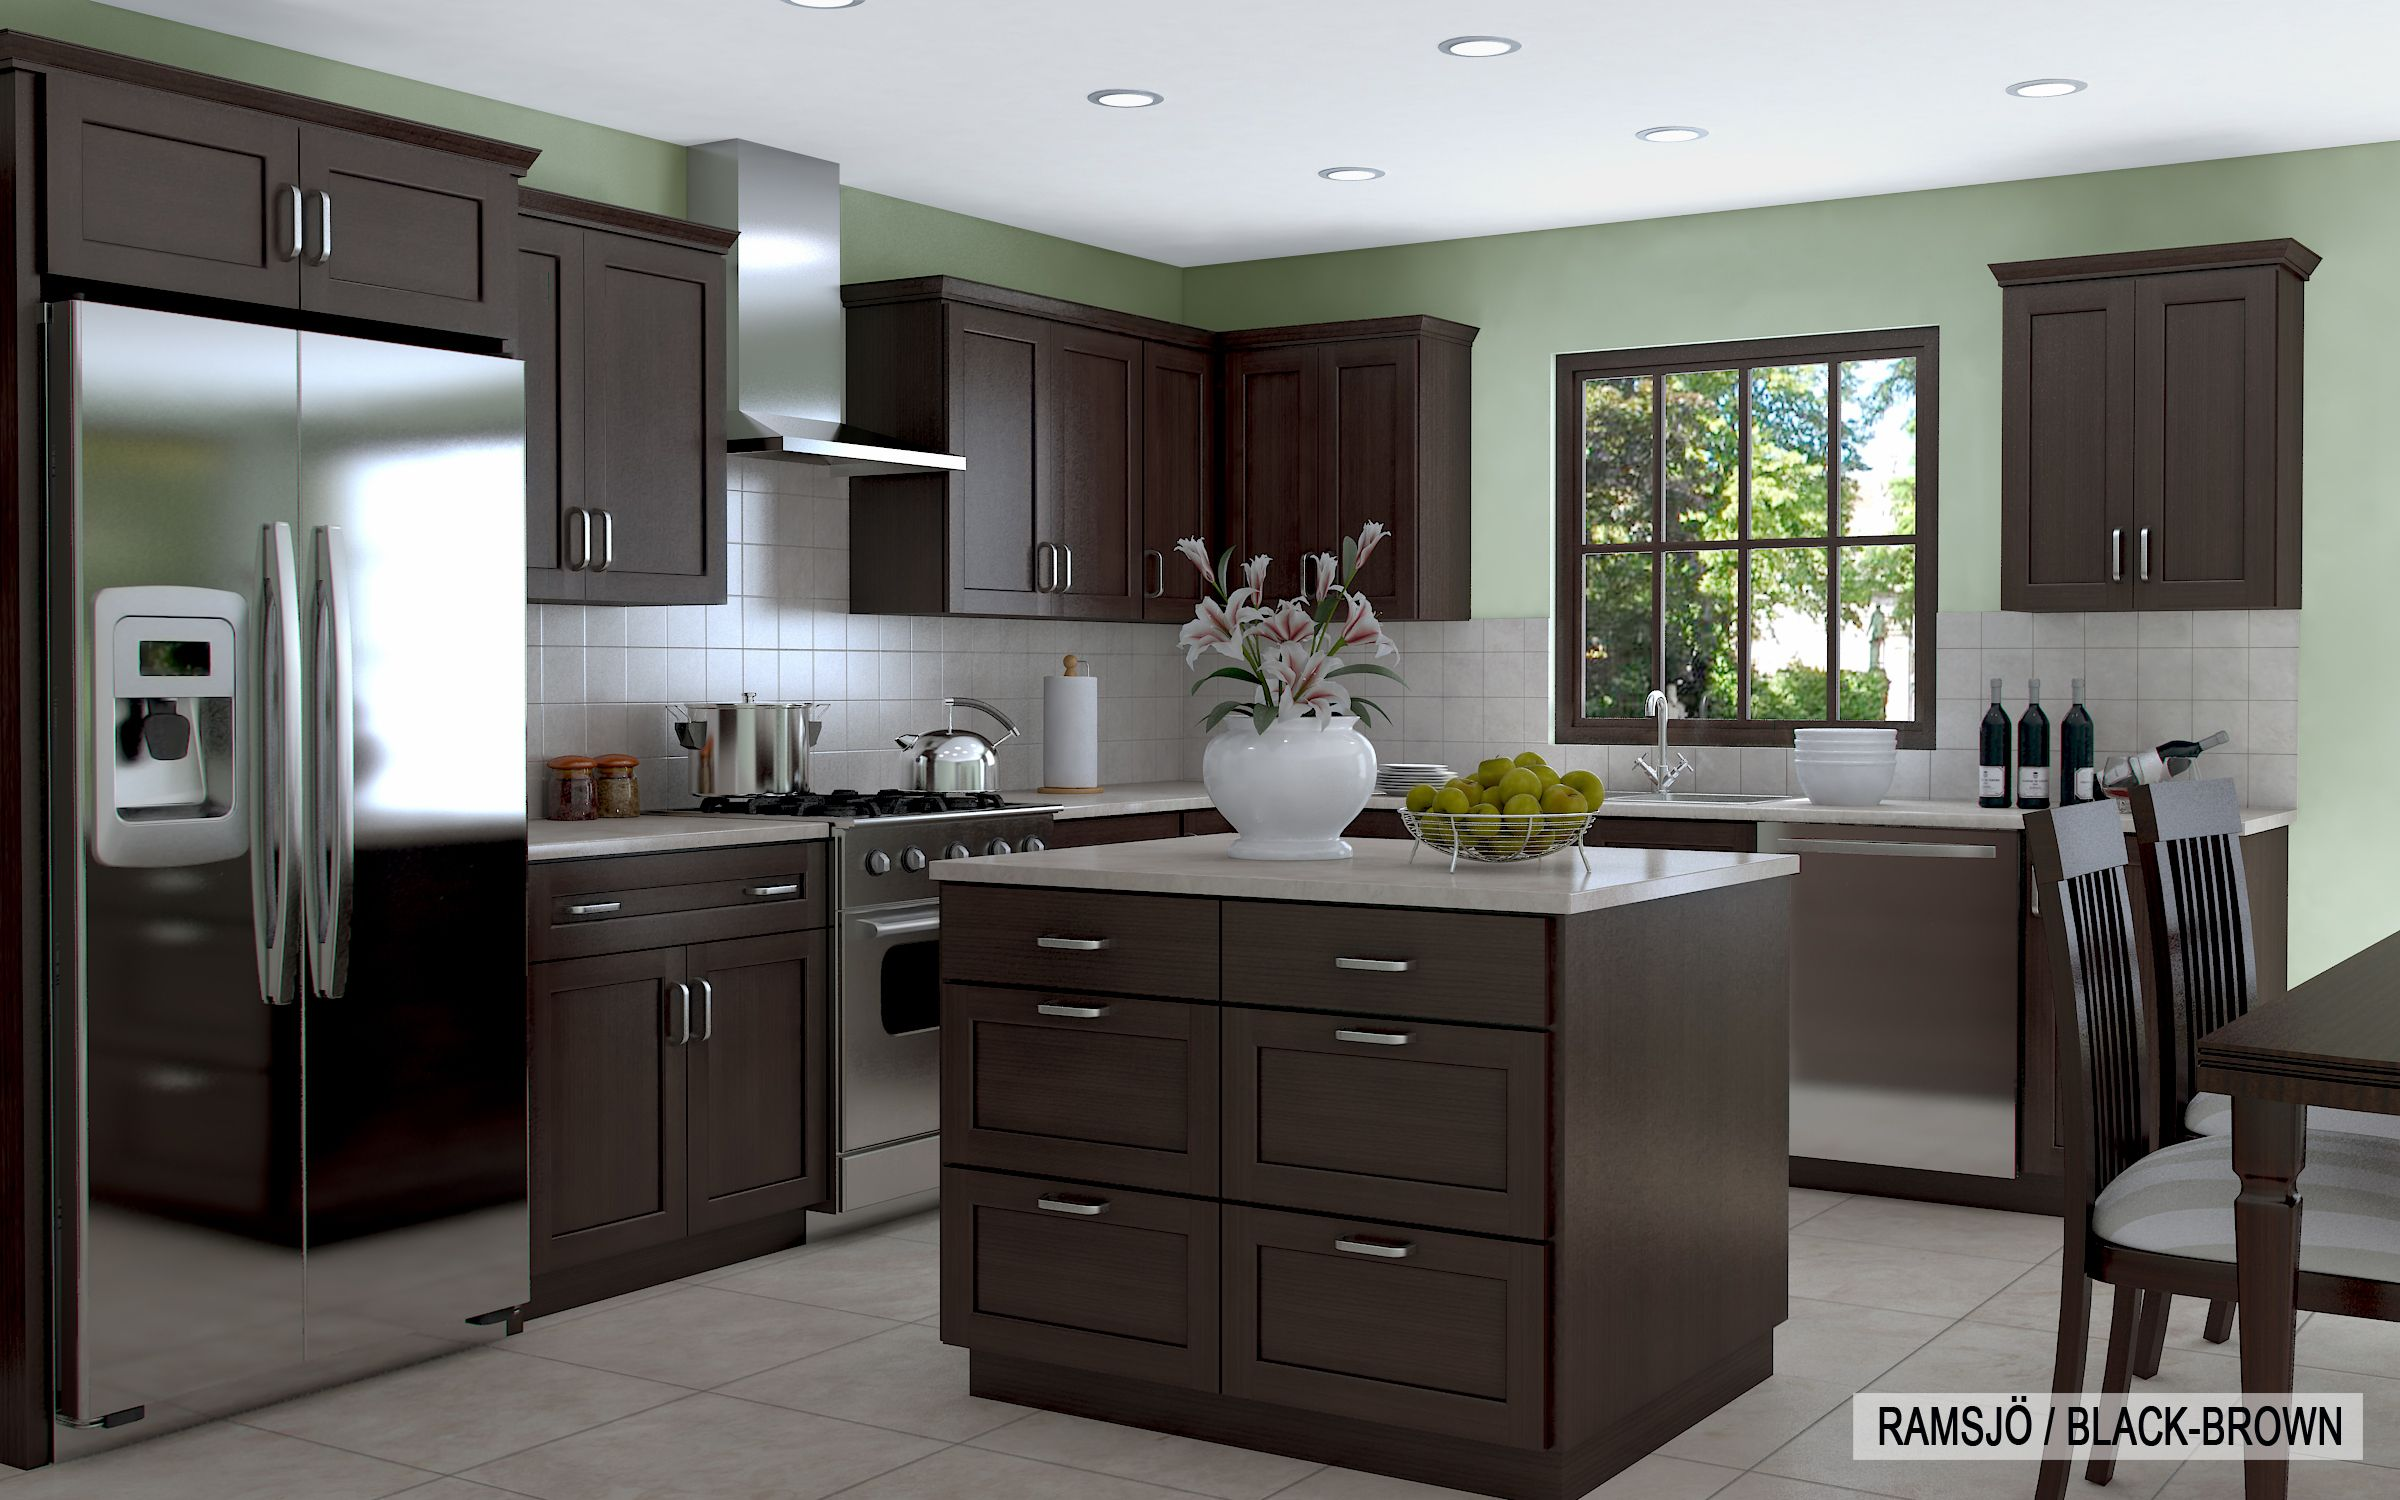 kitchen remodeling wonderful ikea kitchen with grey granite countertop and dark brown cabinets and drawers also